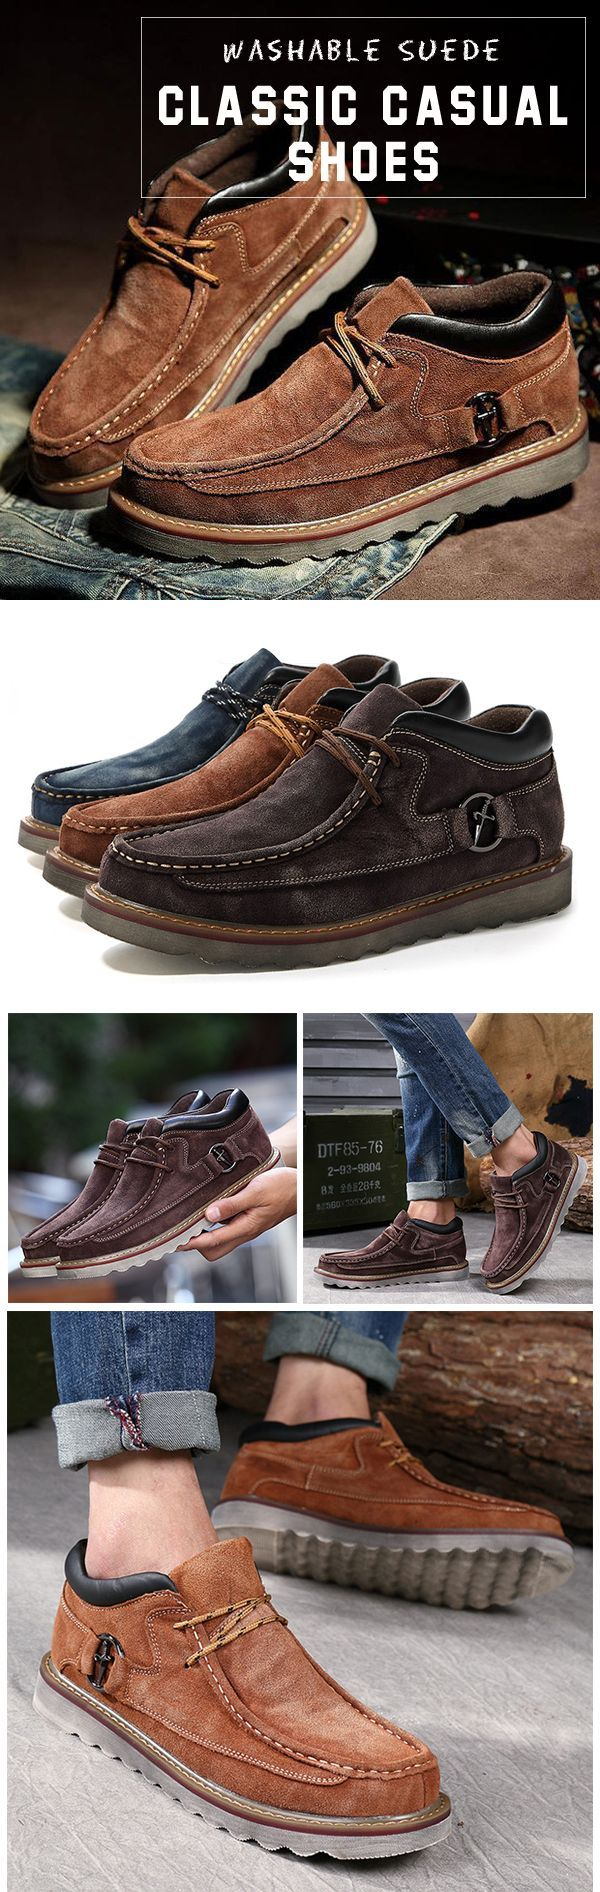 men's shoes_winter fashion shoes_ spring shoes casual_casual outfit shoes_casual spring shoes_casual shoes_casual shoes outfit_fall shoes casual, casual dress shoes, mens boots_mens boots for fall_mens boots ankle_winter boots_winter boots snow_winter fas http://www.allthingsvogue.com